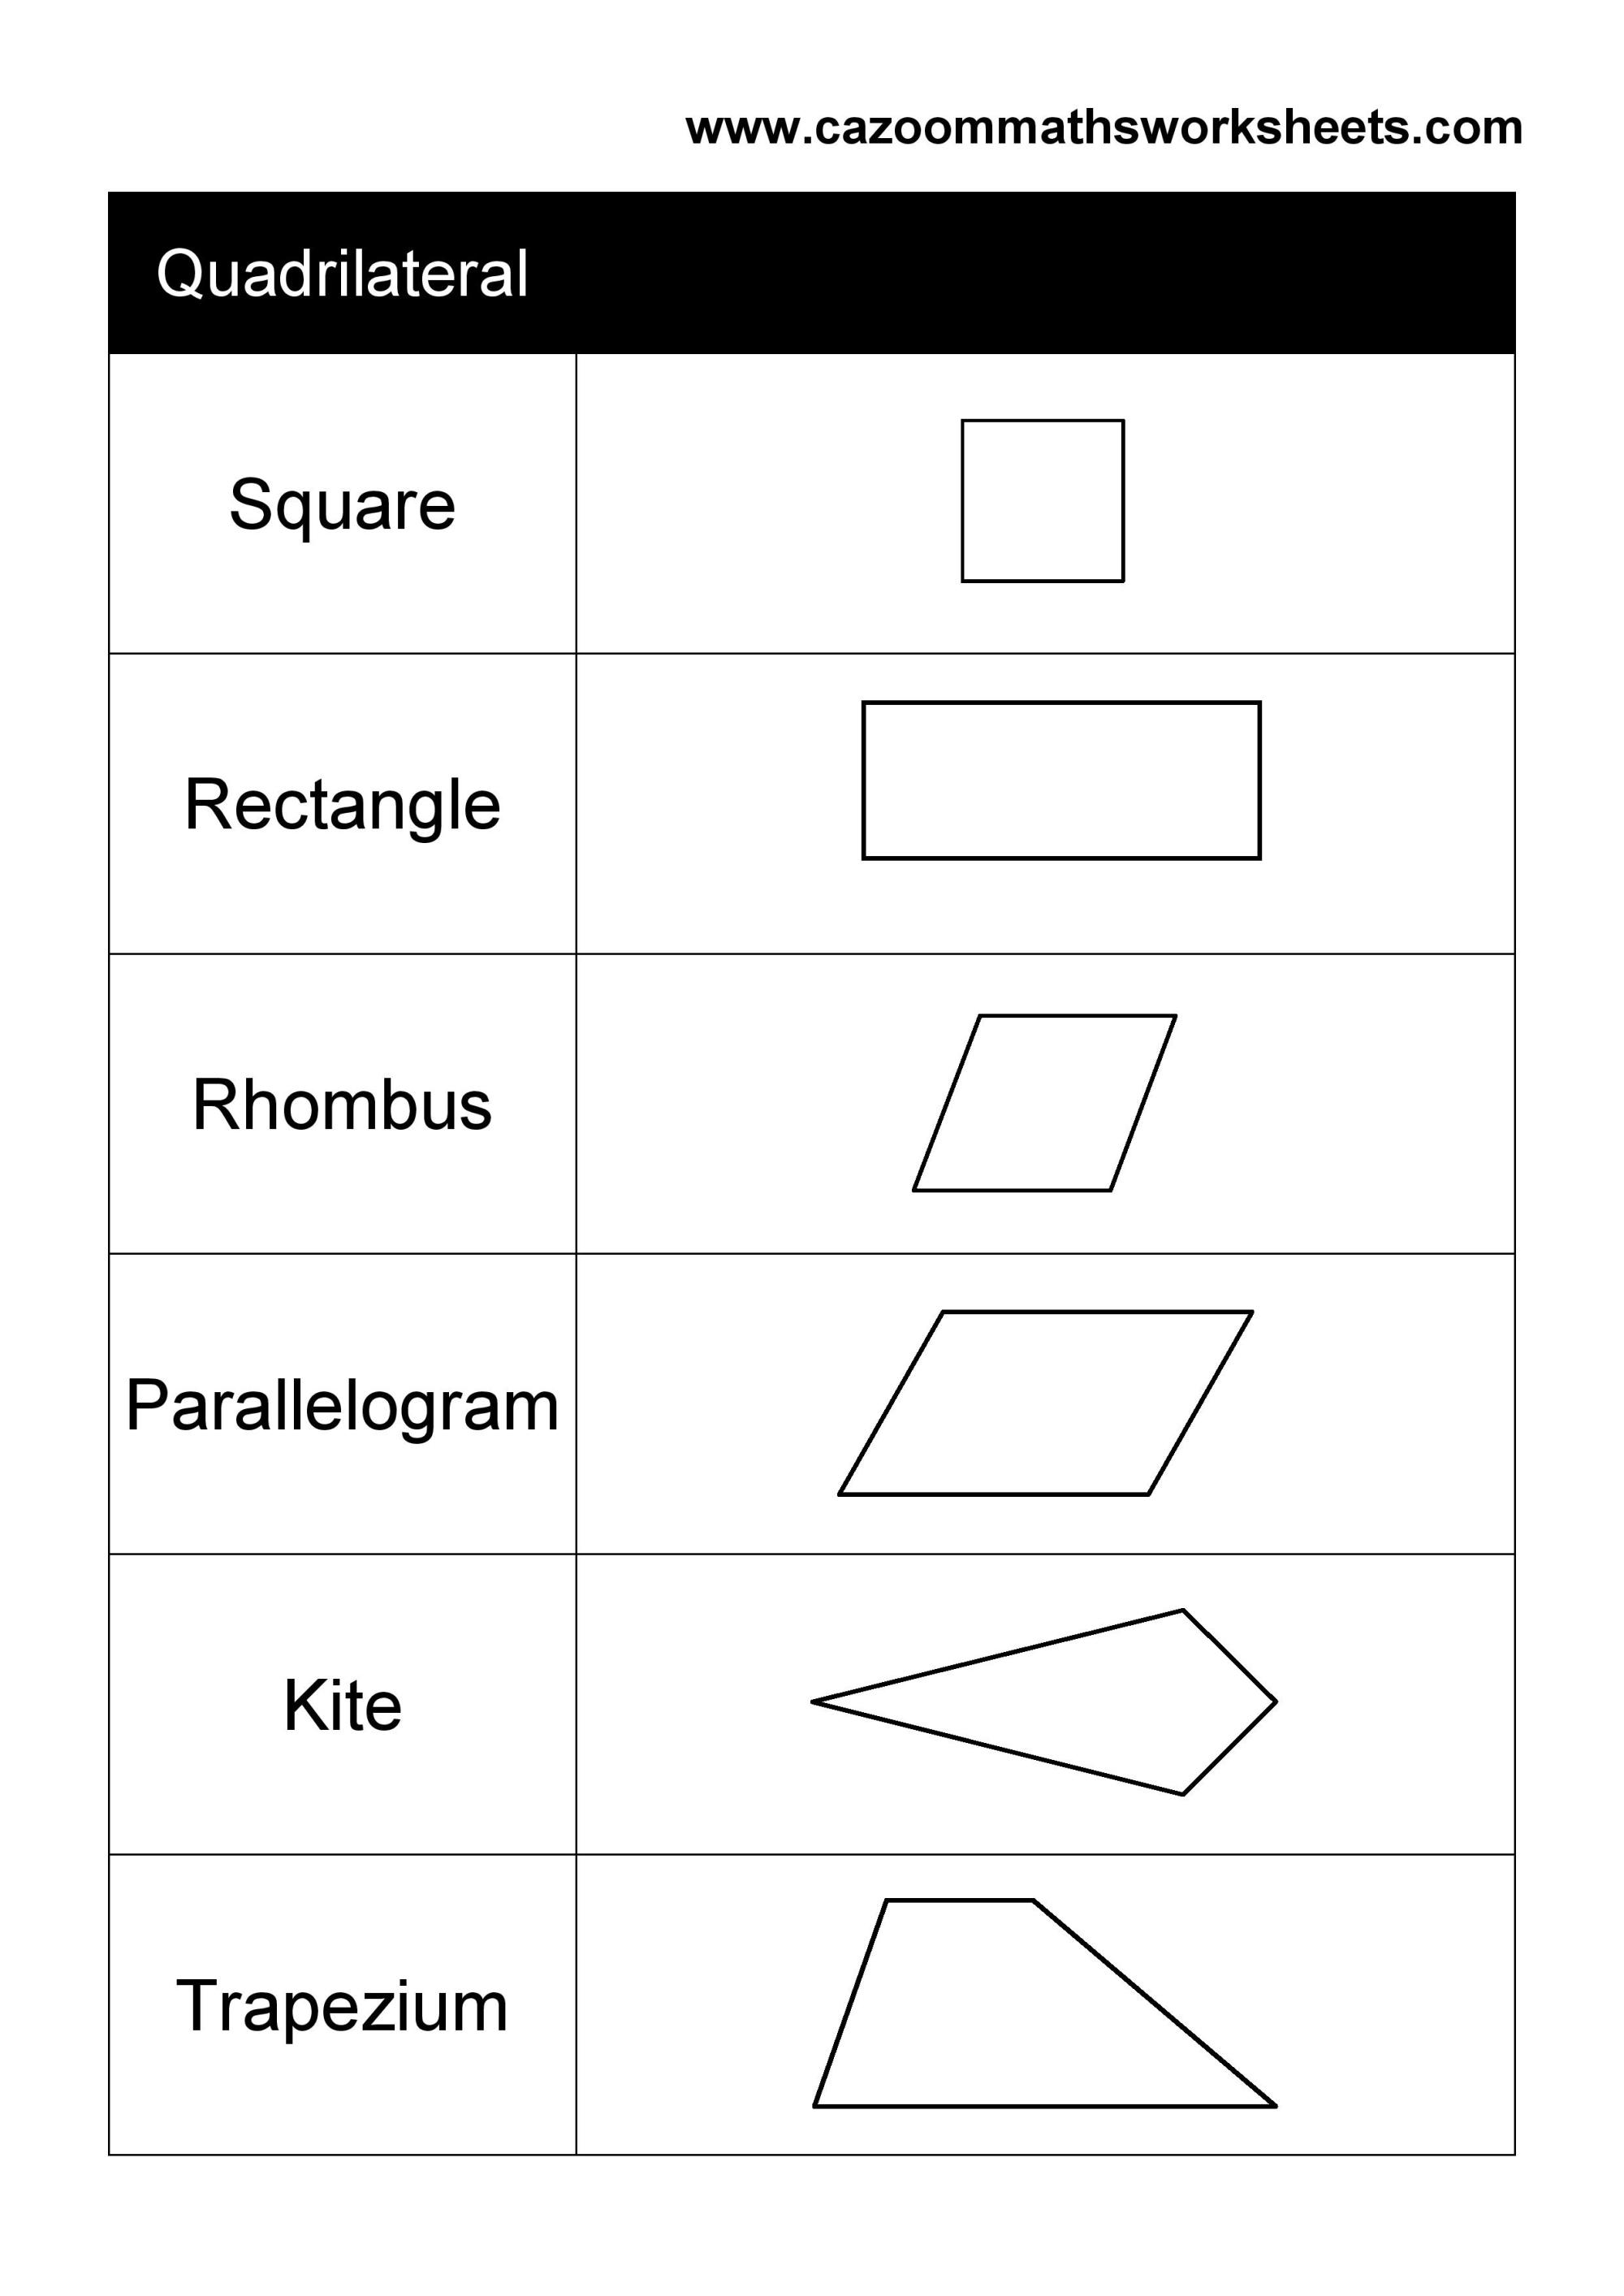 hight resolution of Cazoom Maths Worksheets - Maths worksheets